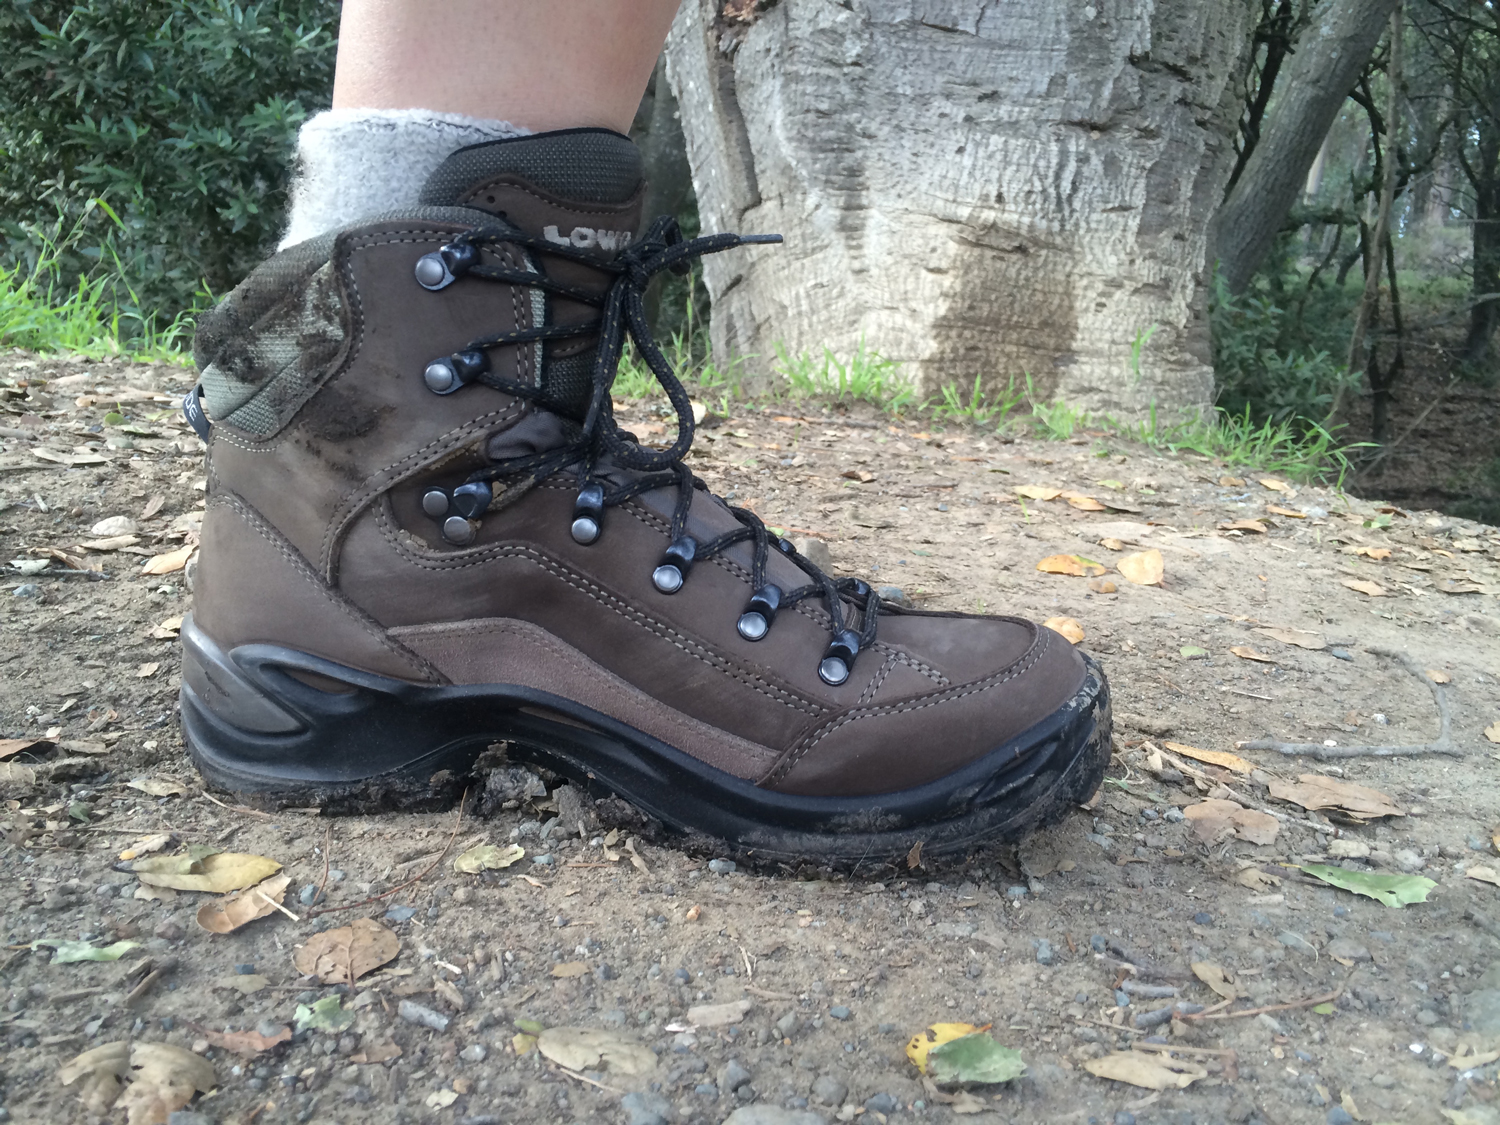 Gear Review: Women's Lowa Renegade GTX Mid Hiking Boots - REI Co ...